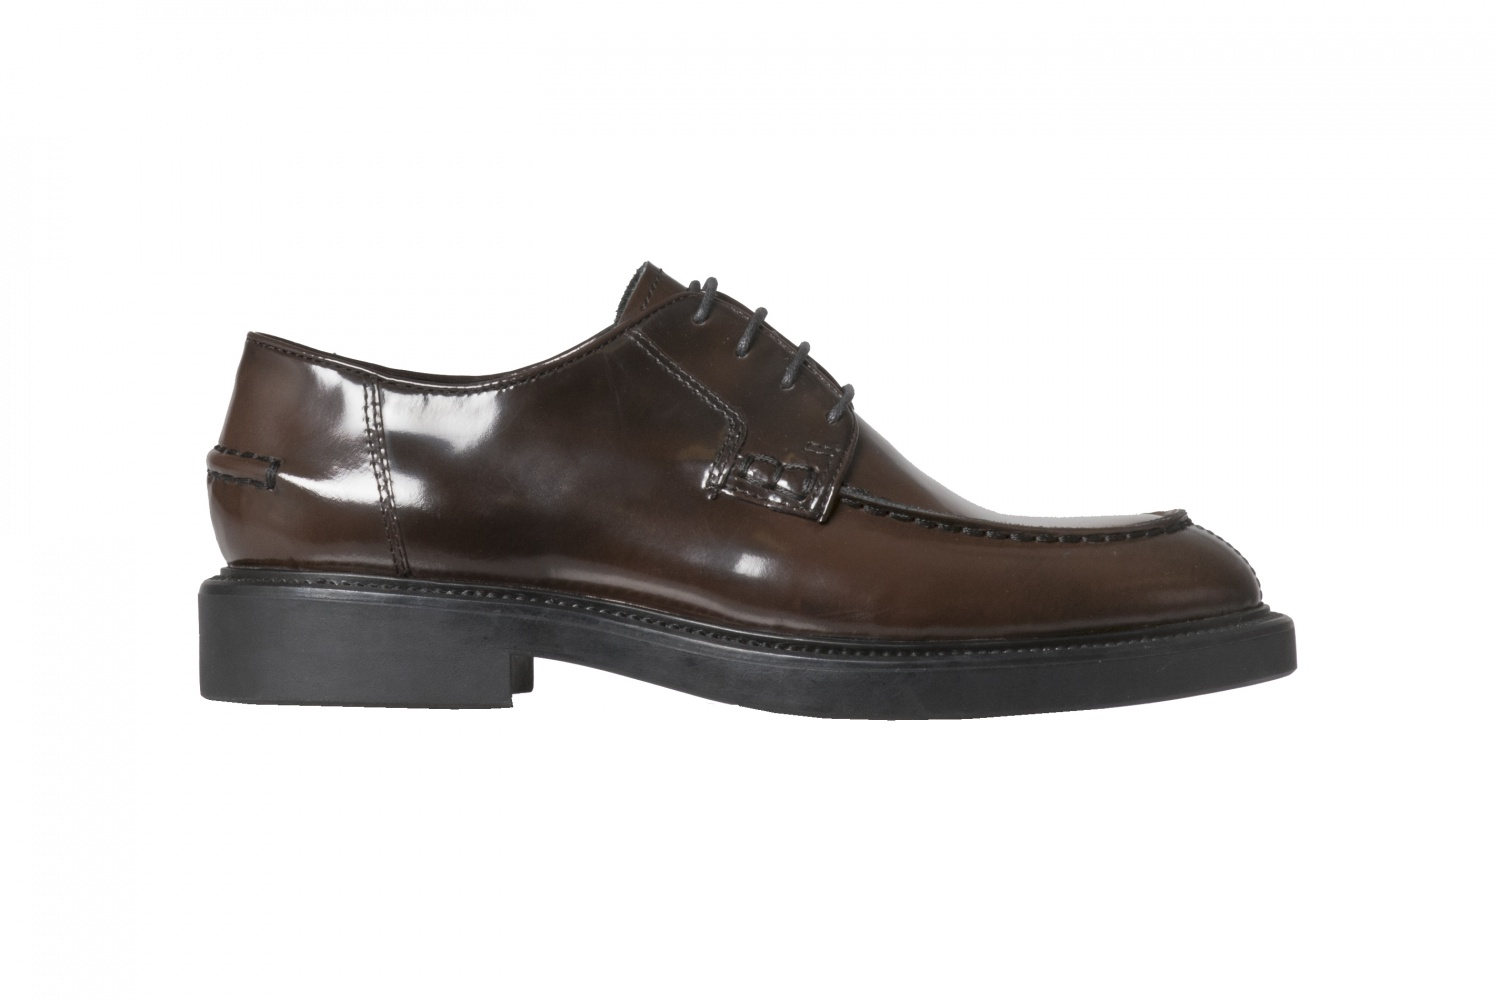 Vagabond introduced a new collection of men's shoes autumn-winter 2017-18